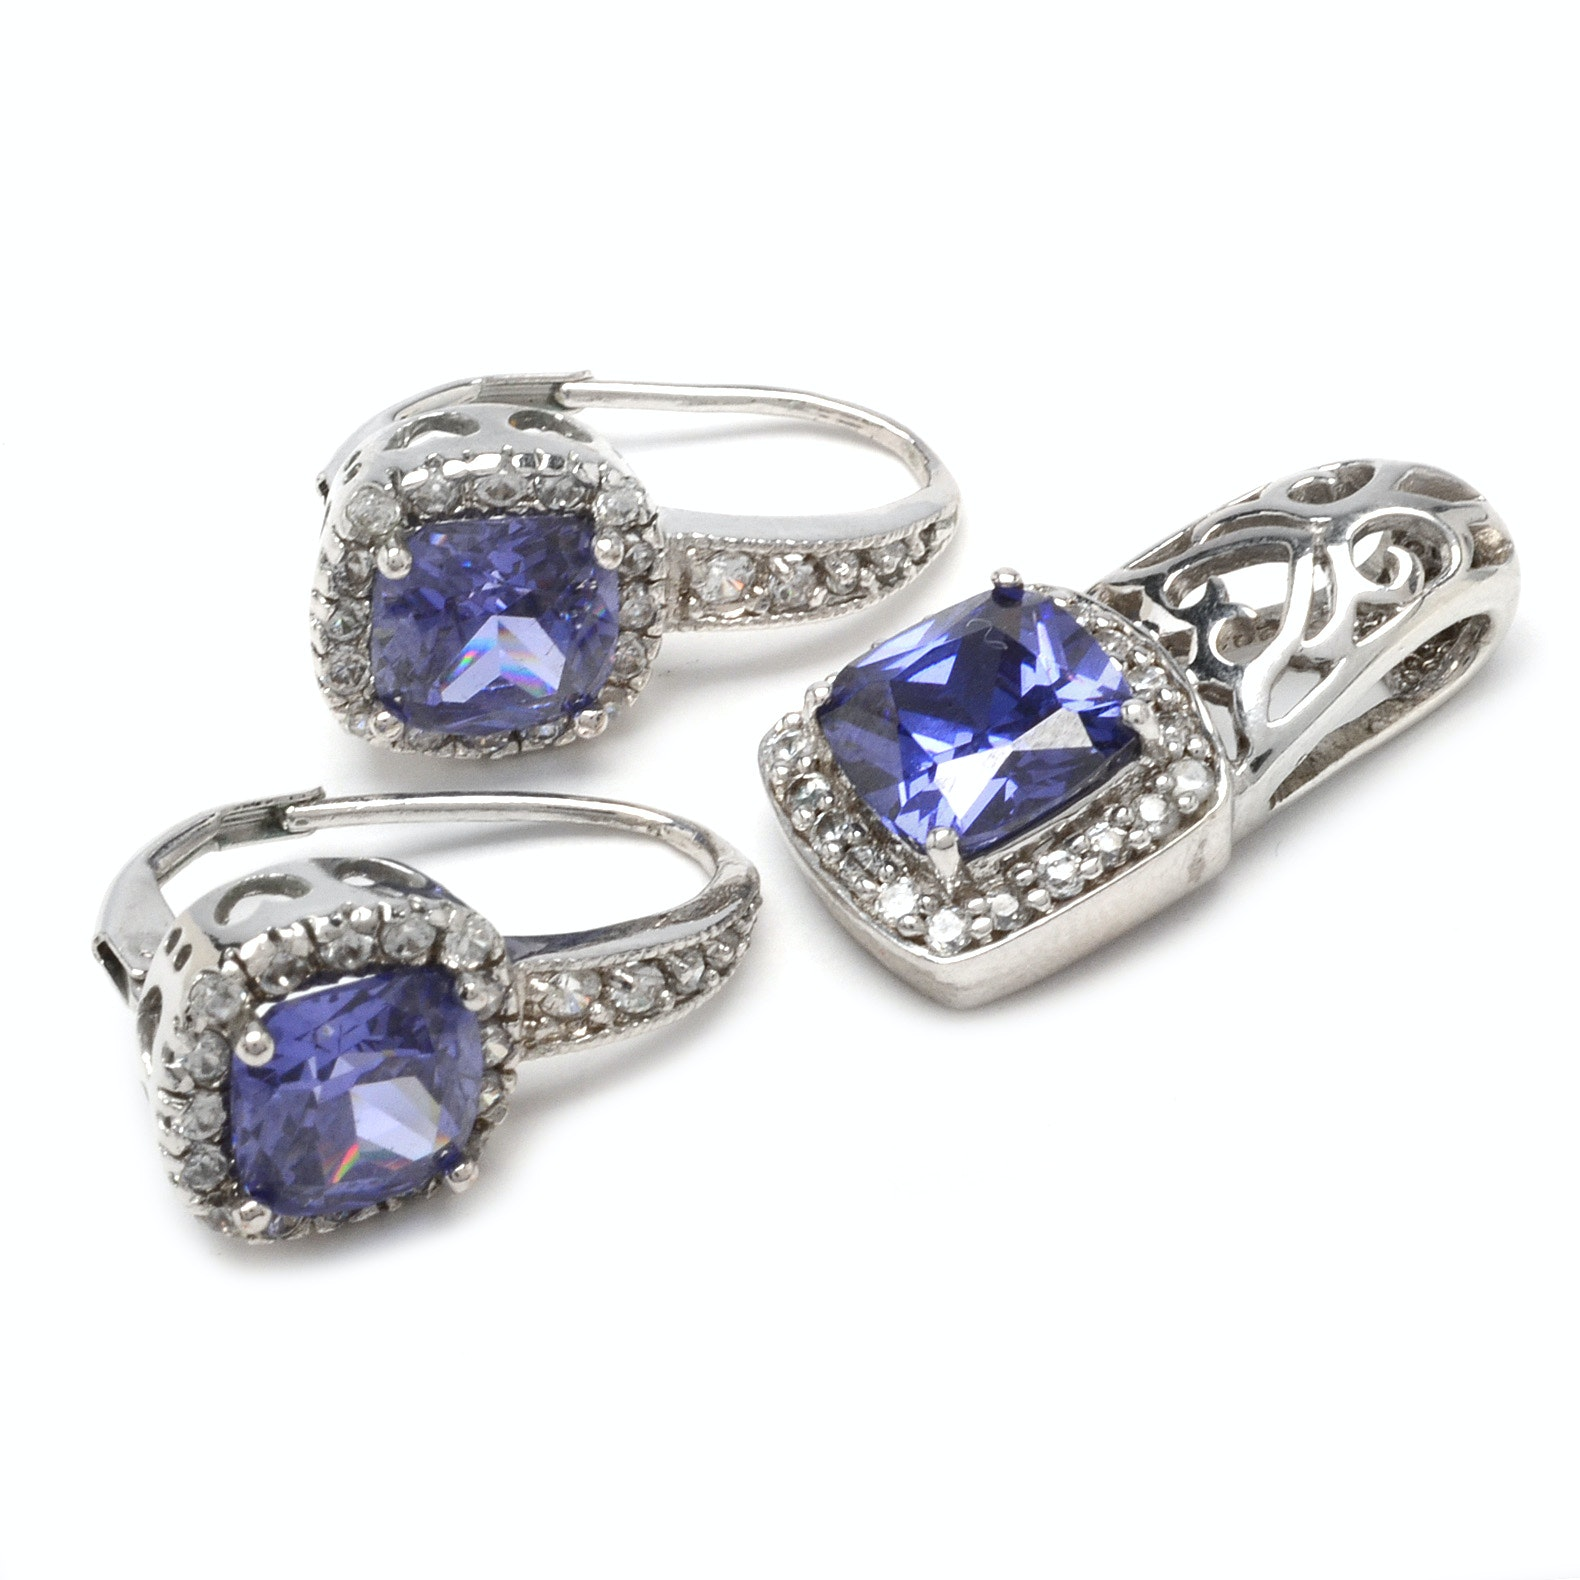 Sterling Silver Jewelry with Simulated Blue Topaz and Cubic Zirconias